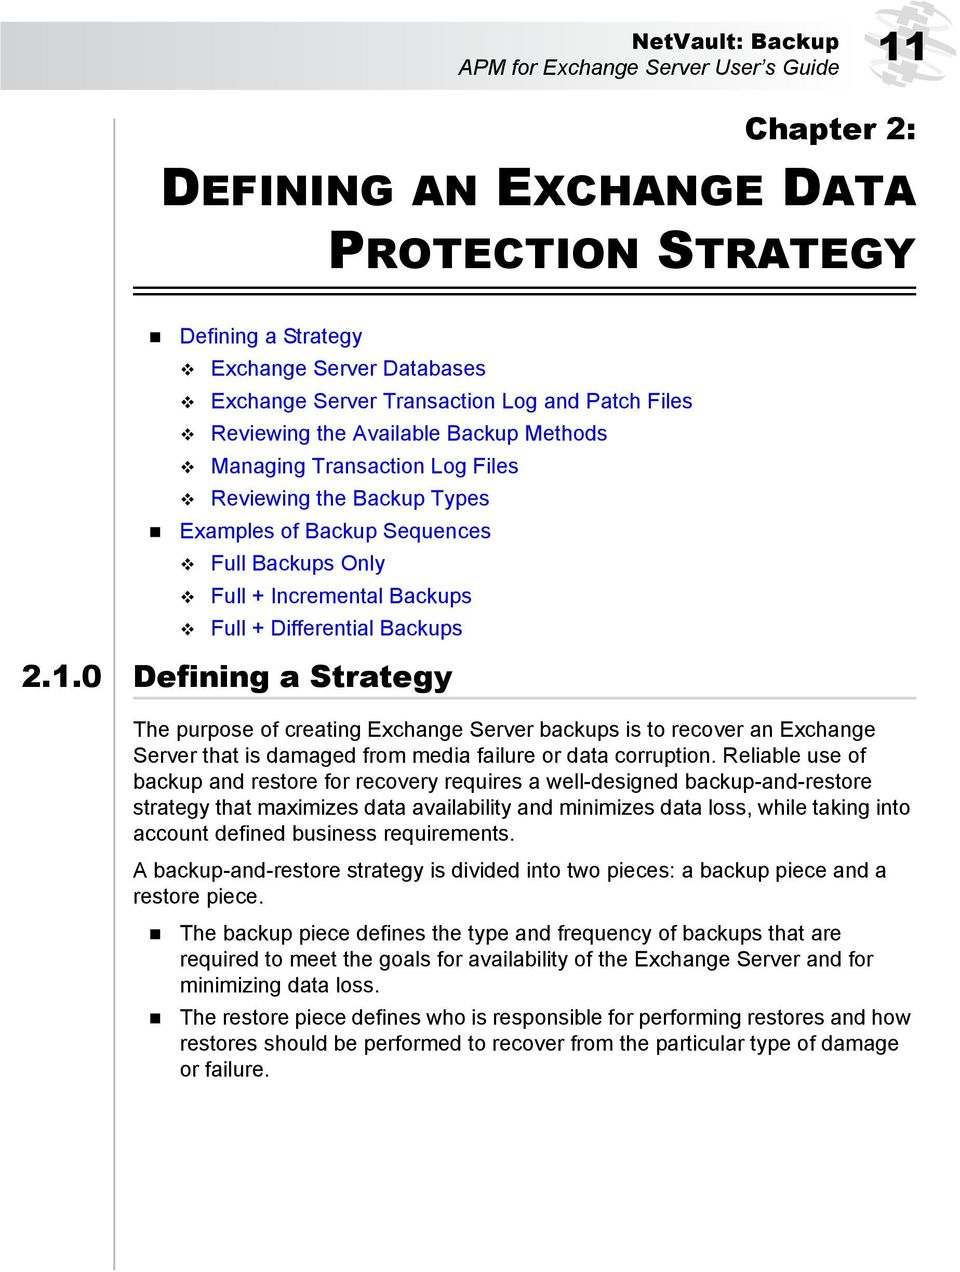 Differential Backups 2.1.0 Defining a Strategy The purpose of creating Exchange Server backups is to recover an Exchange Server that is damaged from media failure or data corruption.